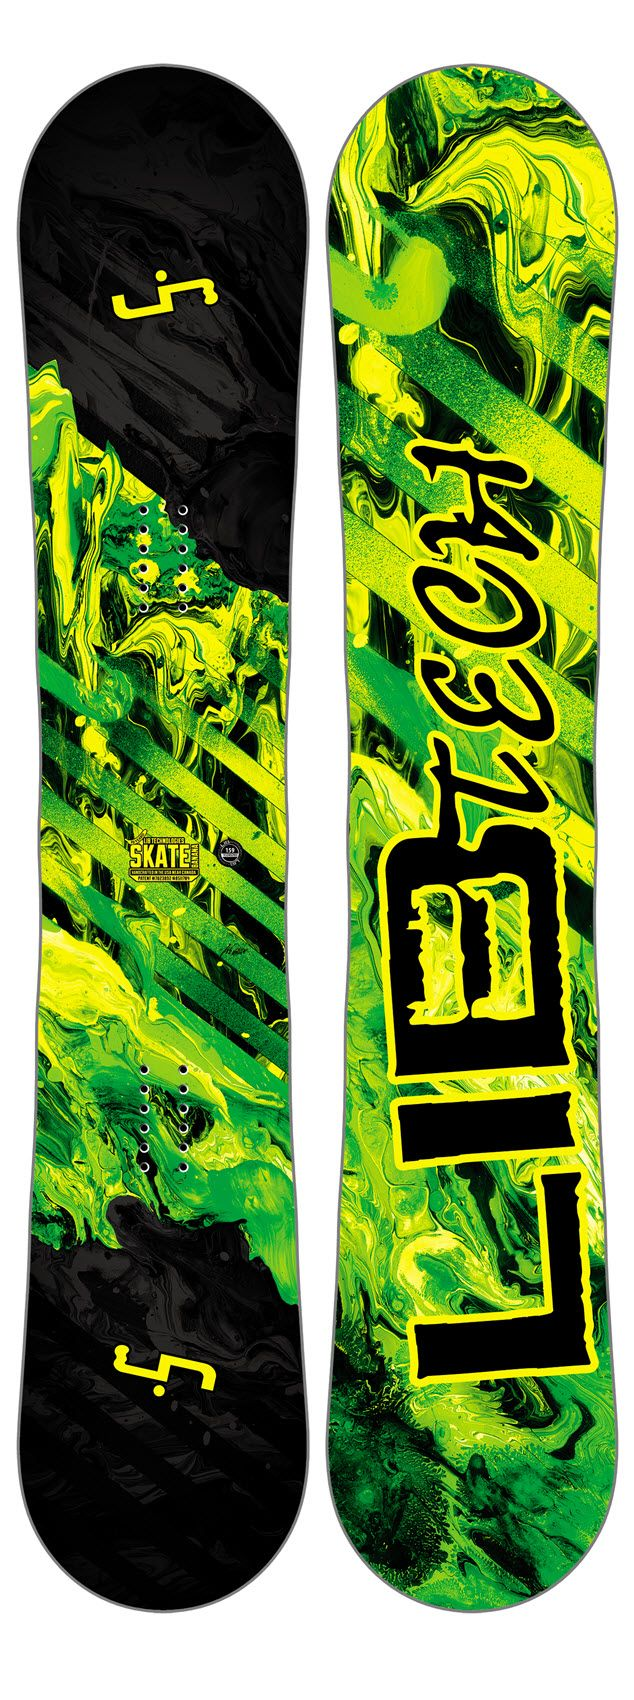 The Wide version of the Lib Tech Skate Banana offers you extra width on the waist allowing for bigger feet feet riders to have the same experience. Fun and easy to ride, whilst still offering high performance the Skate Banana is great everywhere and for everyone, from a keen beginer to a experience older guy! #snowboarding #wide #snowboard